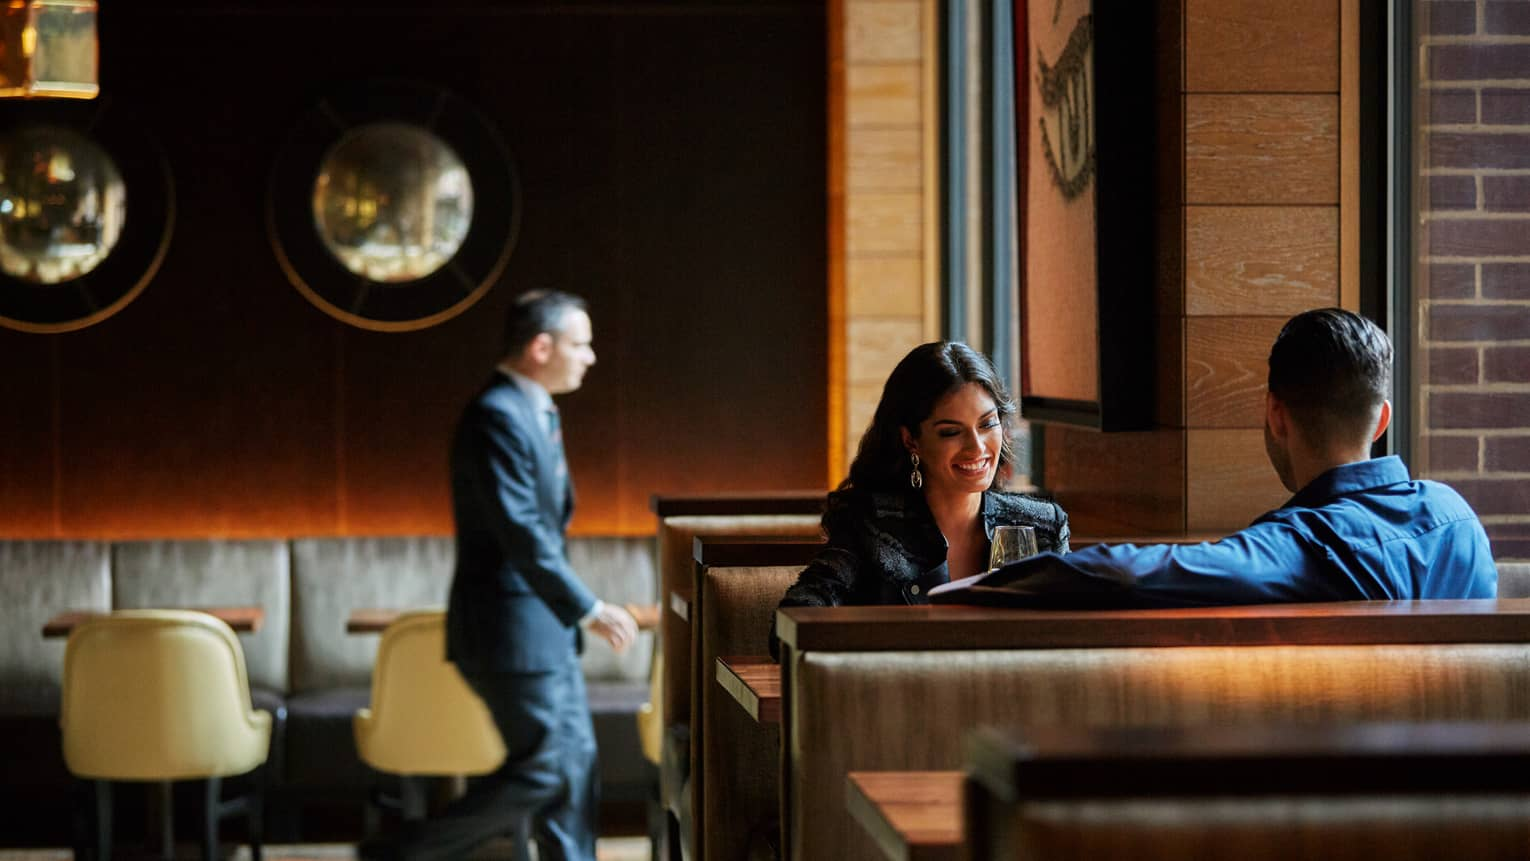 Smiling woman and man in booth in The Lounge at BOURBON STEAK dining room, man in suit walks in background